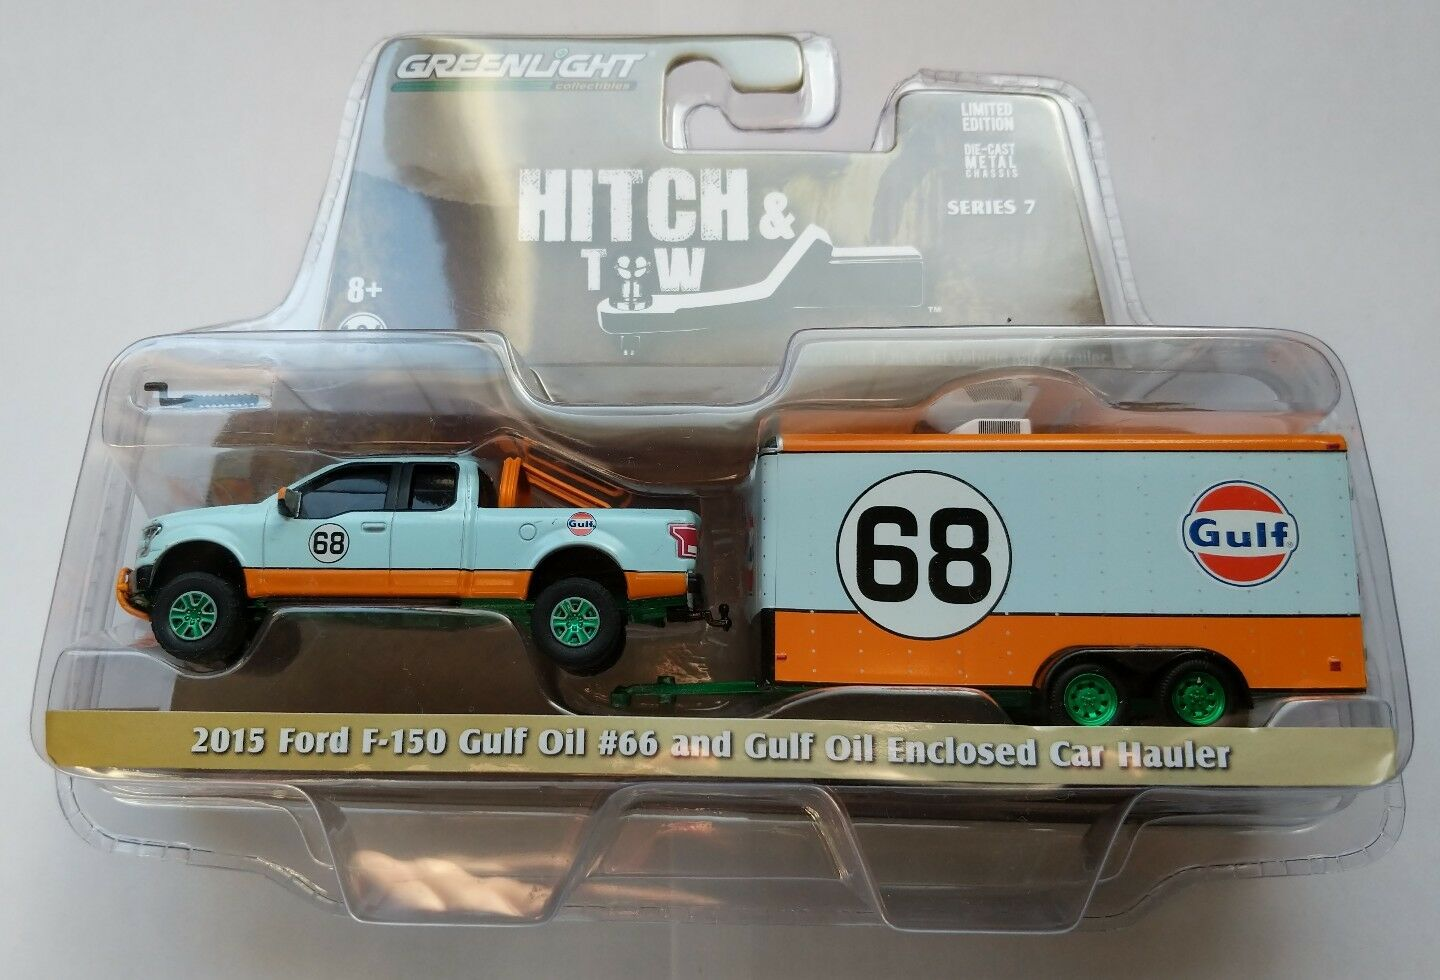 GREENLIGHT Hitch & TOW 2015 F-150 GULF OIL and GULF OIL Enclosed Car Hauler.